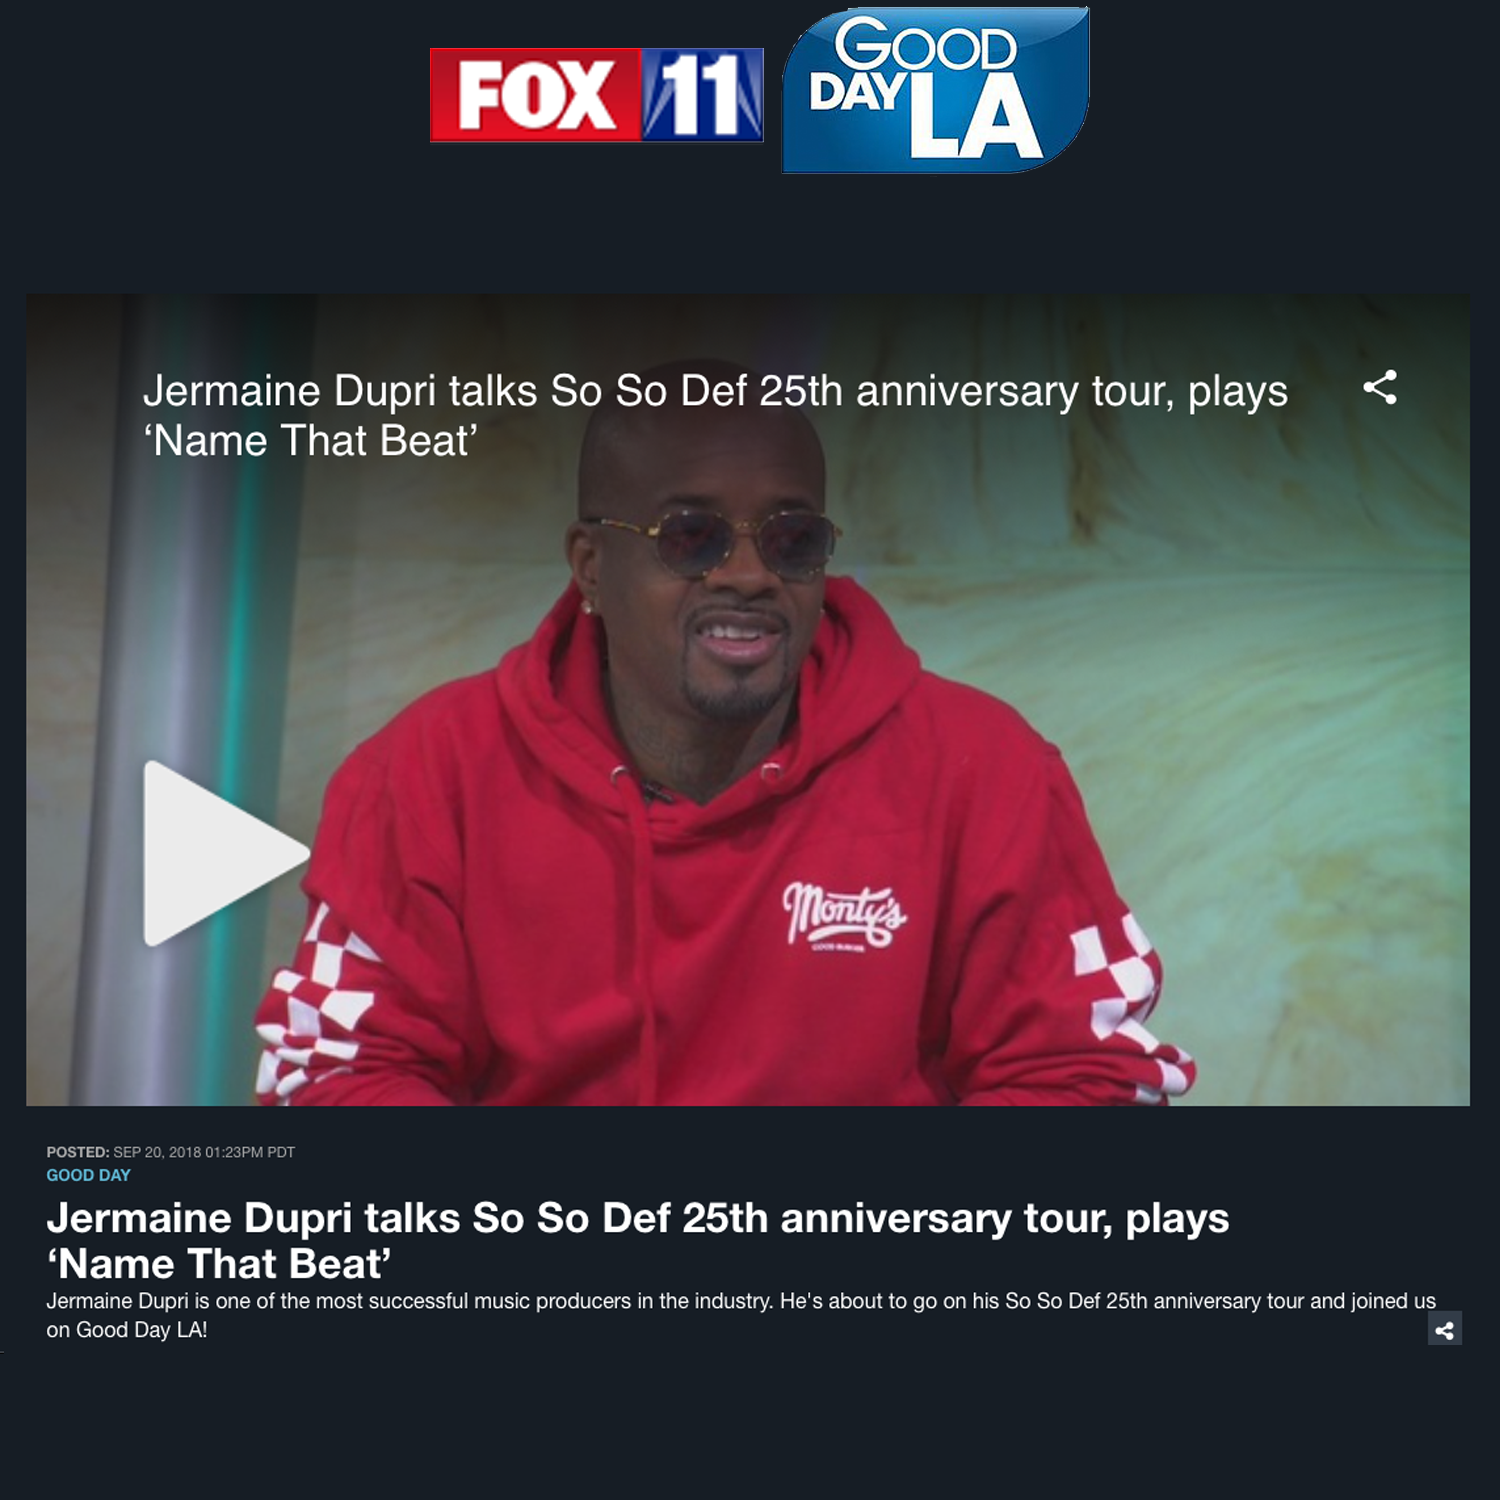 Jermaine Dupri and So So Def on Good Day LA